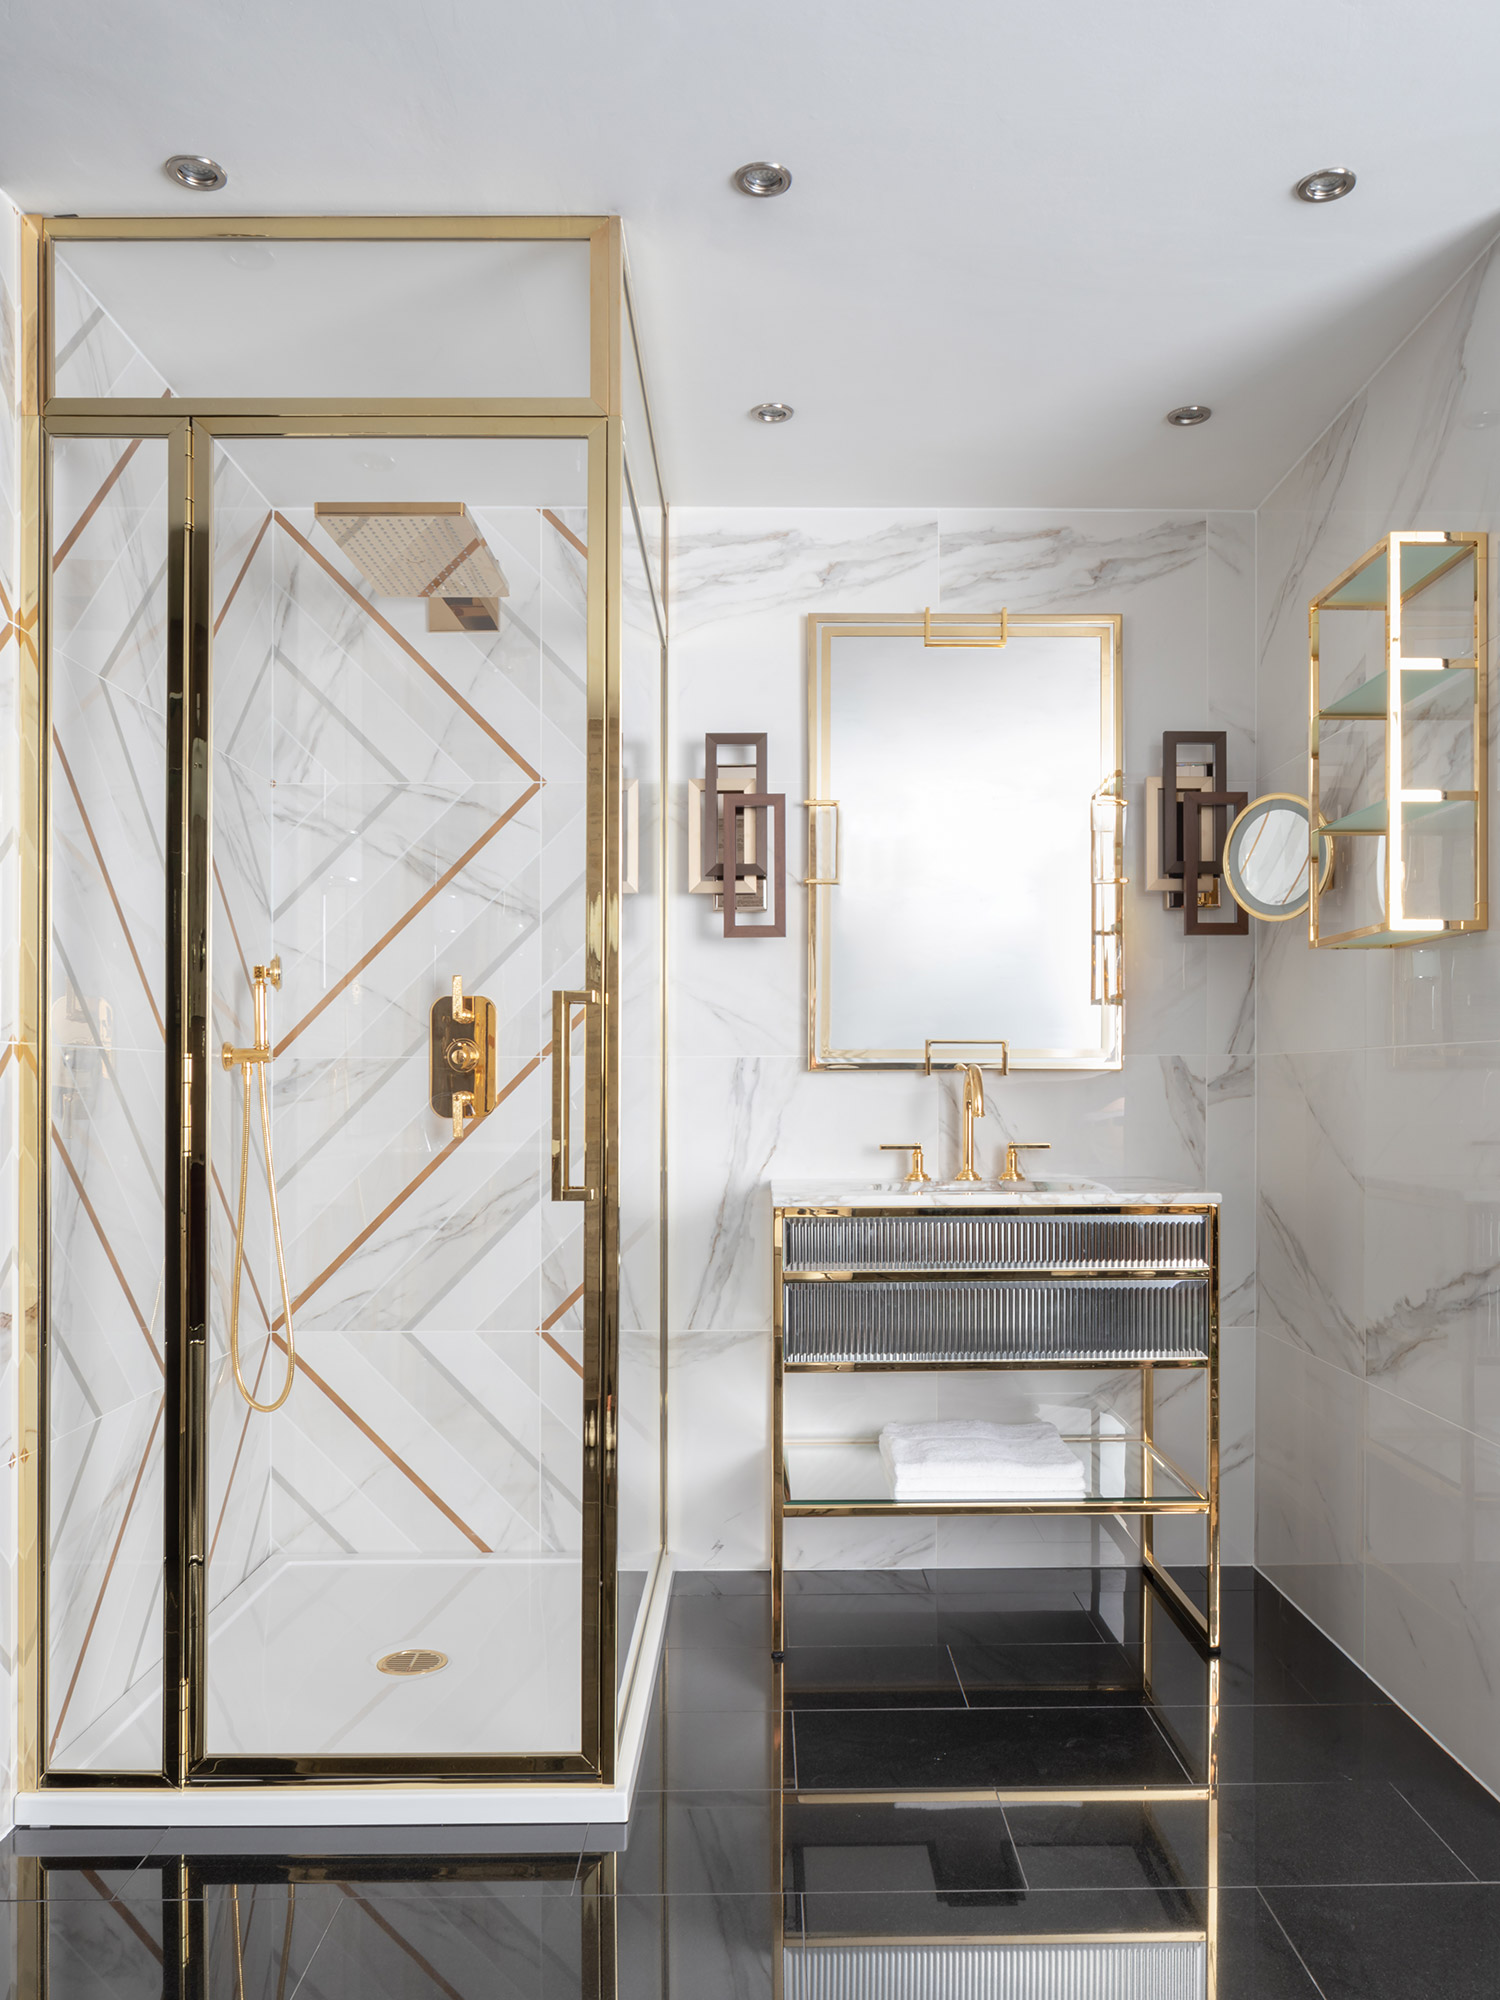 West One Bathrooms Mayfair Showroom South Audley Street 2018 4a